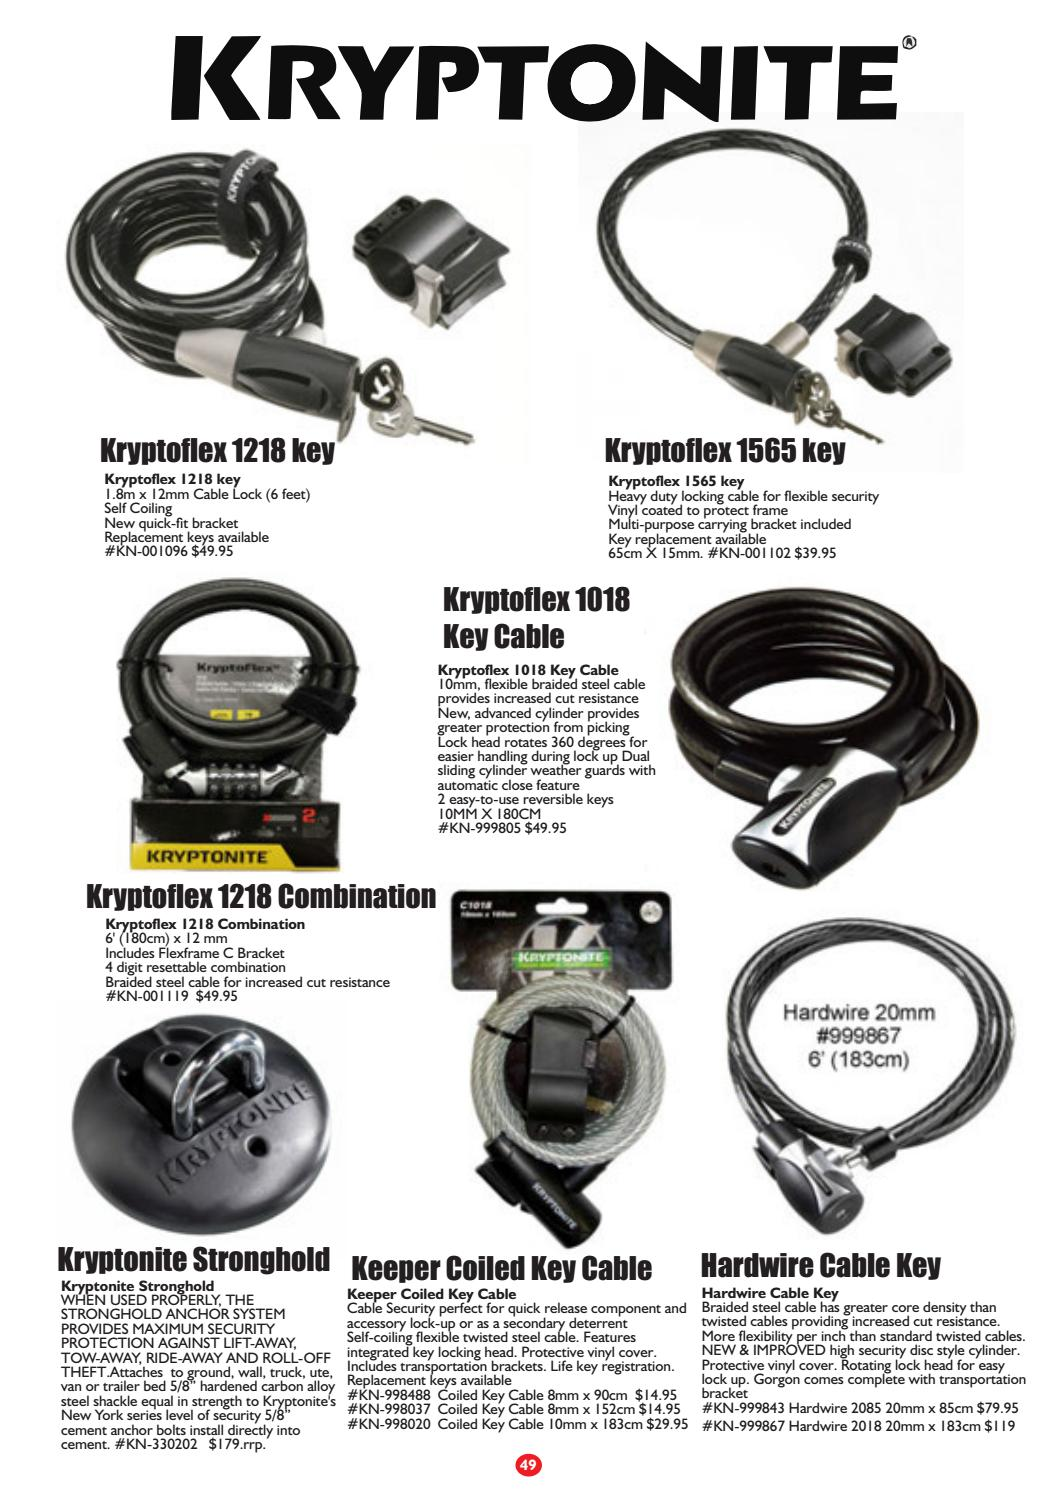 NEW Kryptonite KryptoFlex 1018 Combo Cable Lock 6/' x 10mm